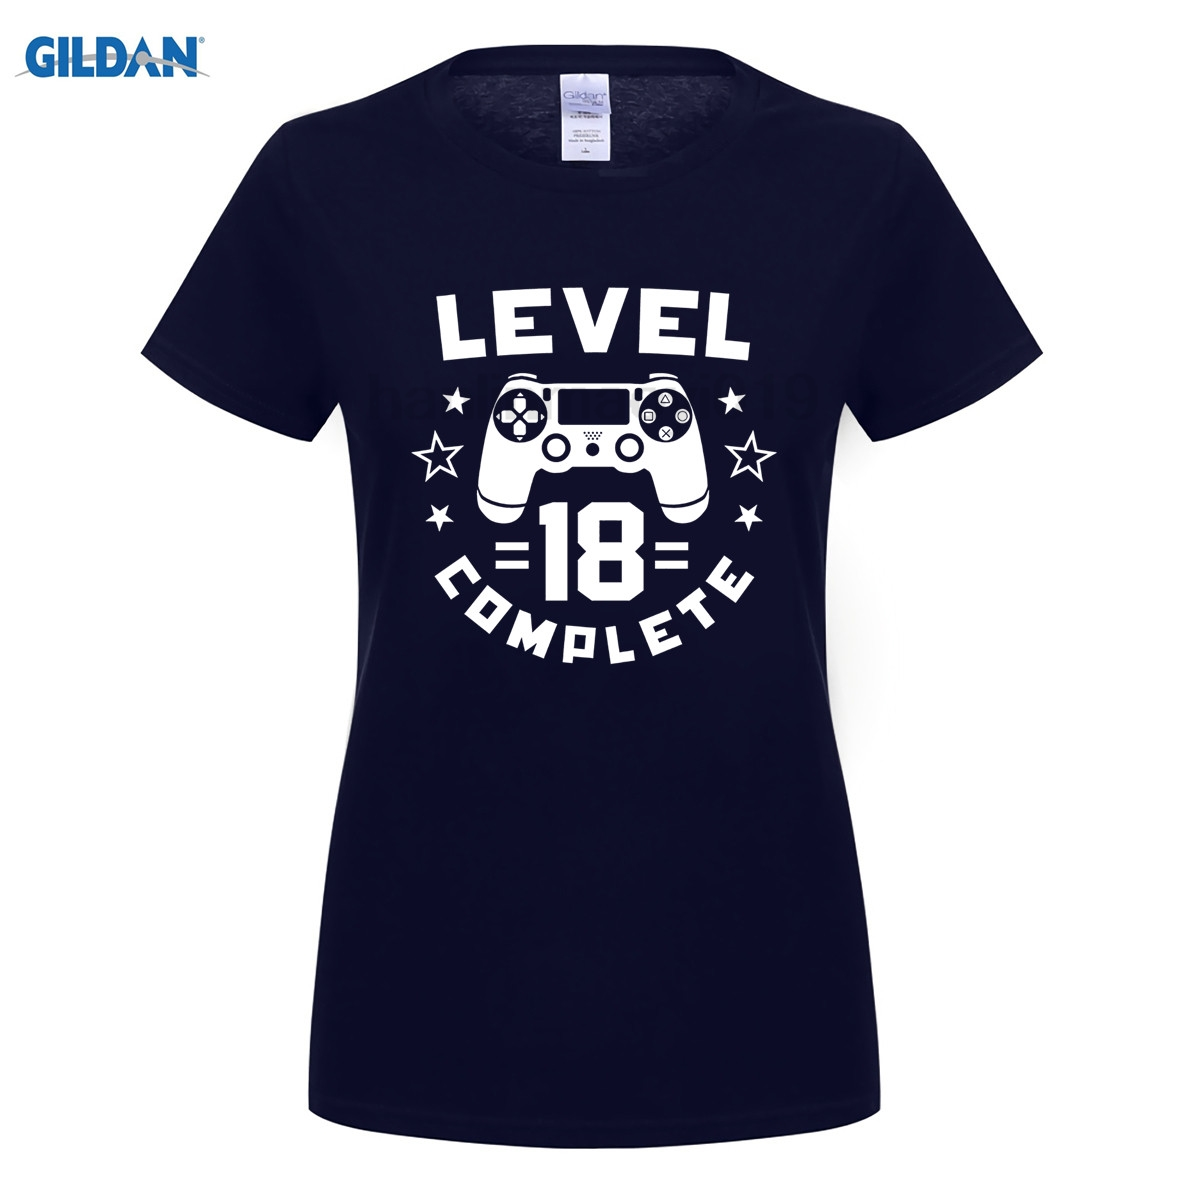 GILDAN Level 18 Complete Video Gamer Geek Boys 18th Birthday Shirt Latest Fun T-shirt Top Casual Wear